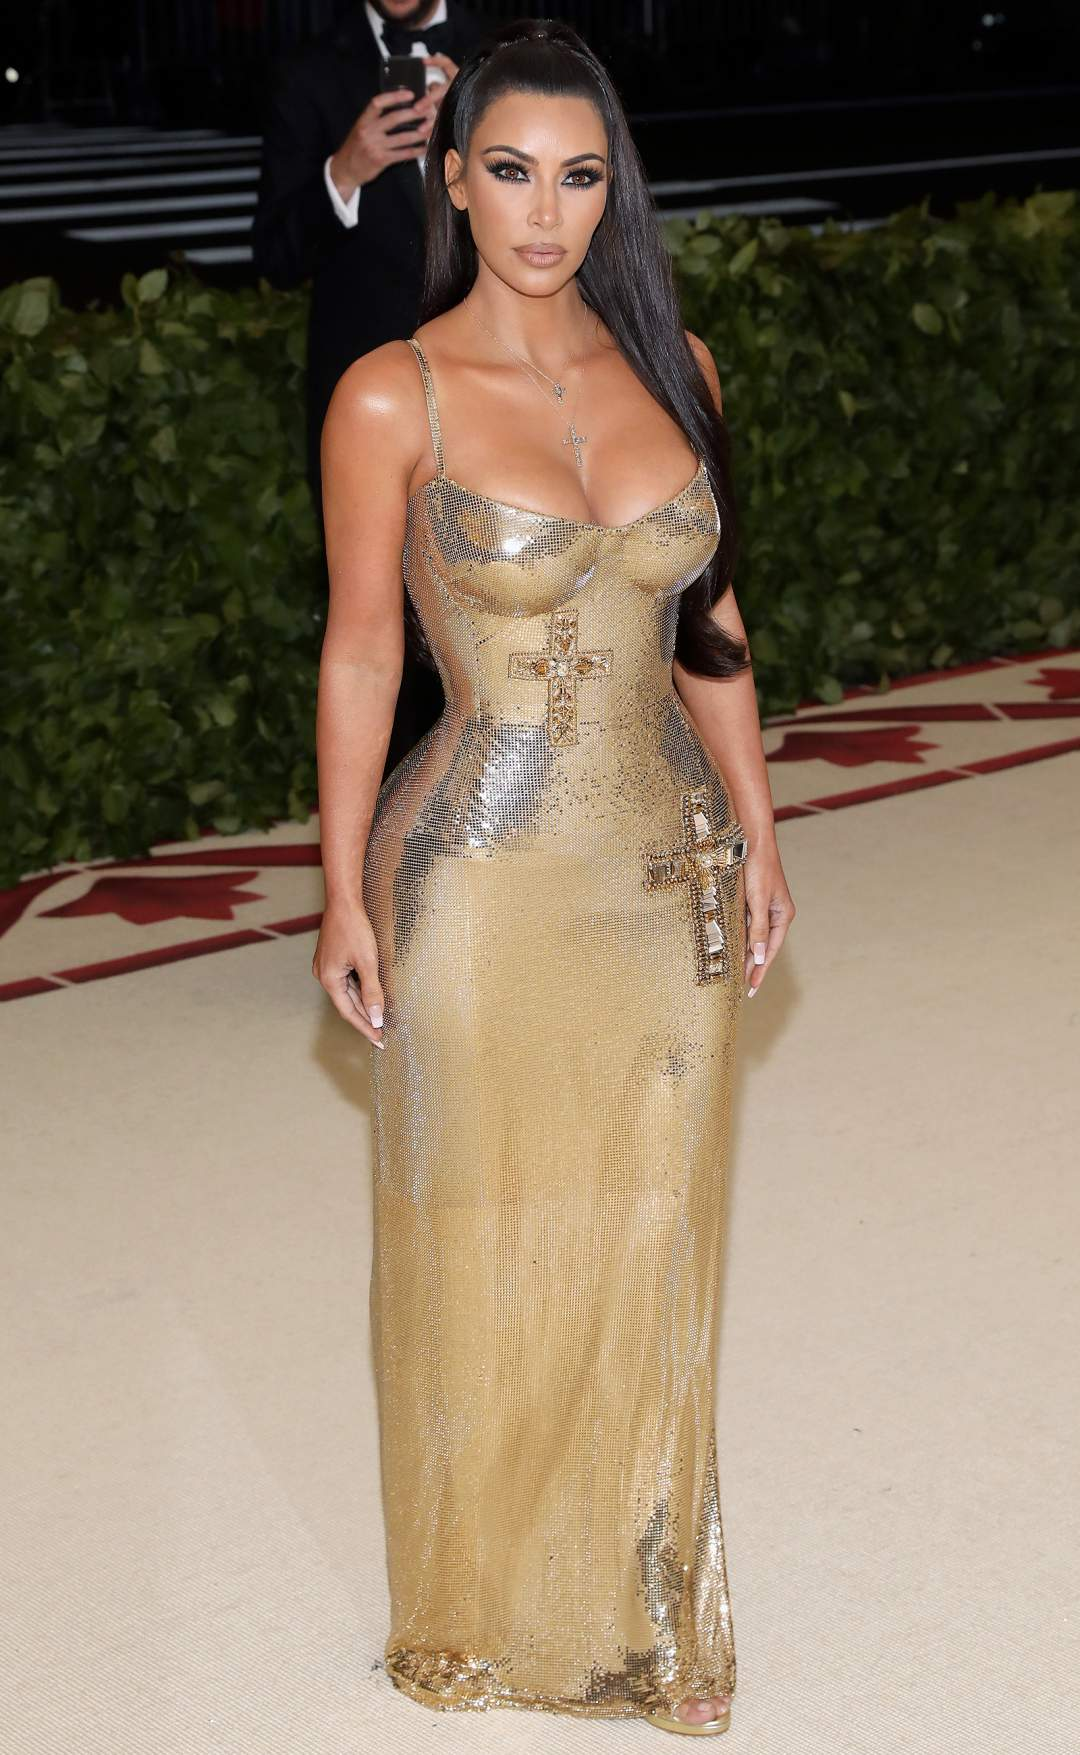 Mandatory Credit: Photo by Amy Sussman/WWD/REX/Shutterstock (9662981ek)Kim Kardashian WestThe Metropolitan Museum of Art's Costume Institute Benefit celebrating the opening of Heavenly Bodies: Fashion and the Catholic Imagination, Arrivals, New York, USA - 07 May 2018